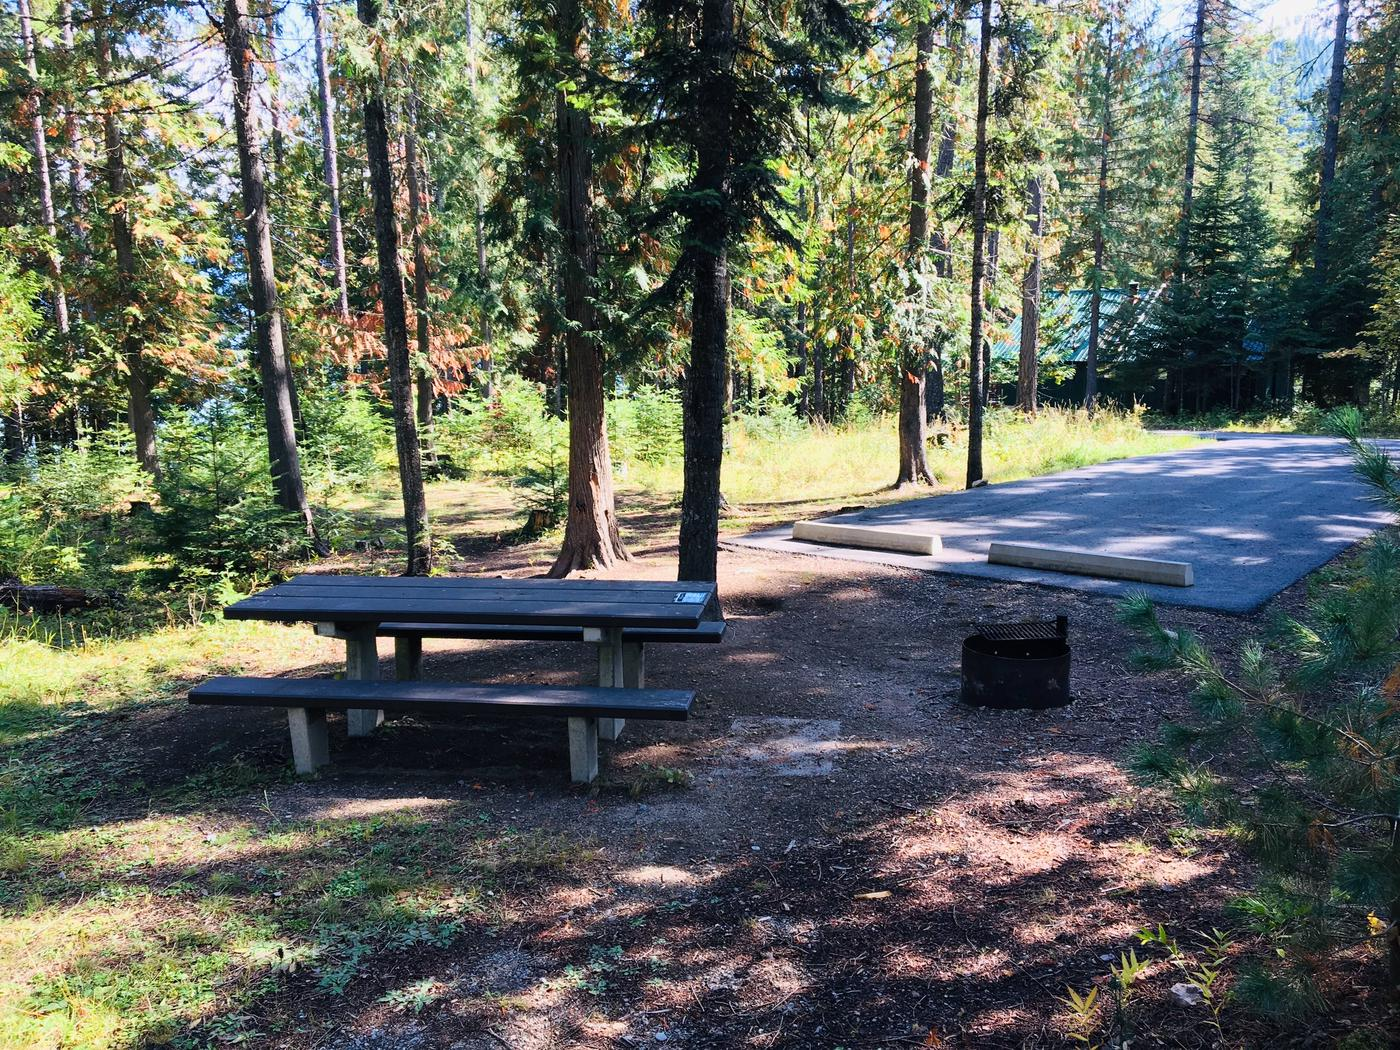 Outlet Campground Site 10